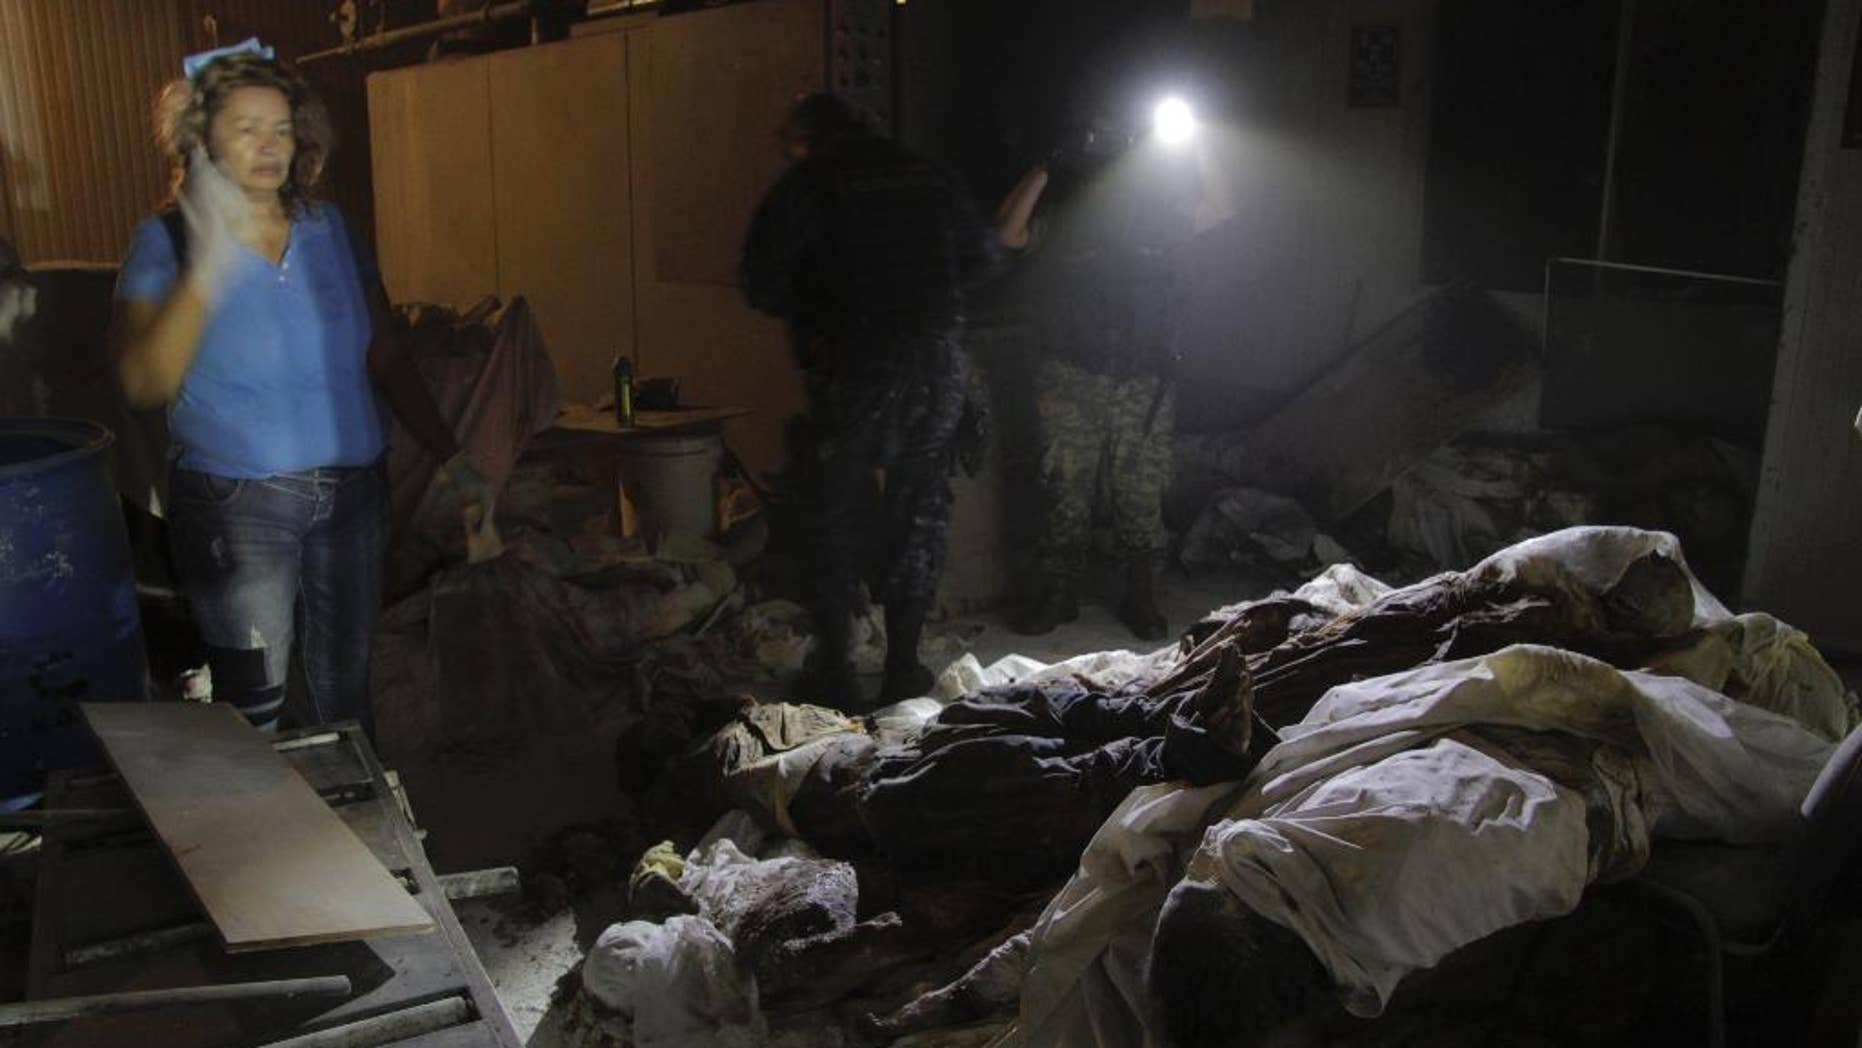 Forensic workers and Mexican army soldiers stand next to a pile of bodies found at the crematorium of an abandoned funeral home near Acapulco, Mexico, early Friday Feb. 6, 2015. Sixty-one decomposed bodies, most of them male, were discovered Thursday evening at the facility, which had been shuttered for about one year, according to a government official. The state of Guerrero, where Acapulco is located, has been shaken by drug-related violence, including the notorious disappearance of 43 college students who allegedly were rounded up by corrupt police on Sept. 26 and handed over to a drug gang. (AP Photo/Bernandino Hernandez)